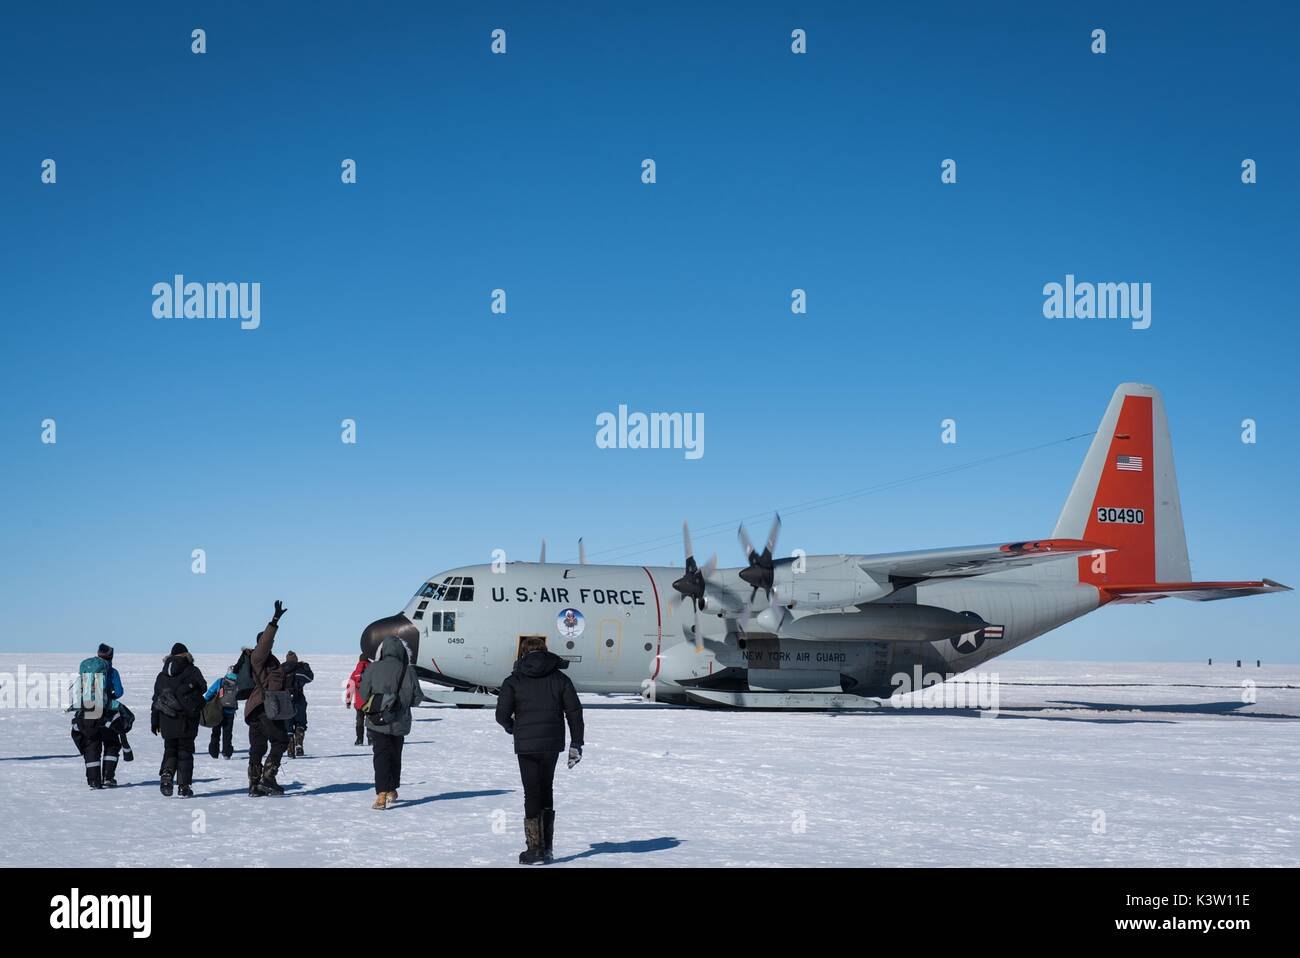 Scientists board a U.S. Air Force LC-130 Hercules aircraft at the East Greenland Ice Core Project underground station July 29, 2017 in Kangerlussuaq, Greenland.  (photo by Greg C. Biondo  via Planetpix) - Stock Image